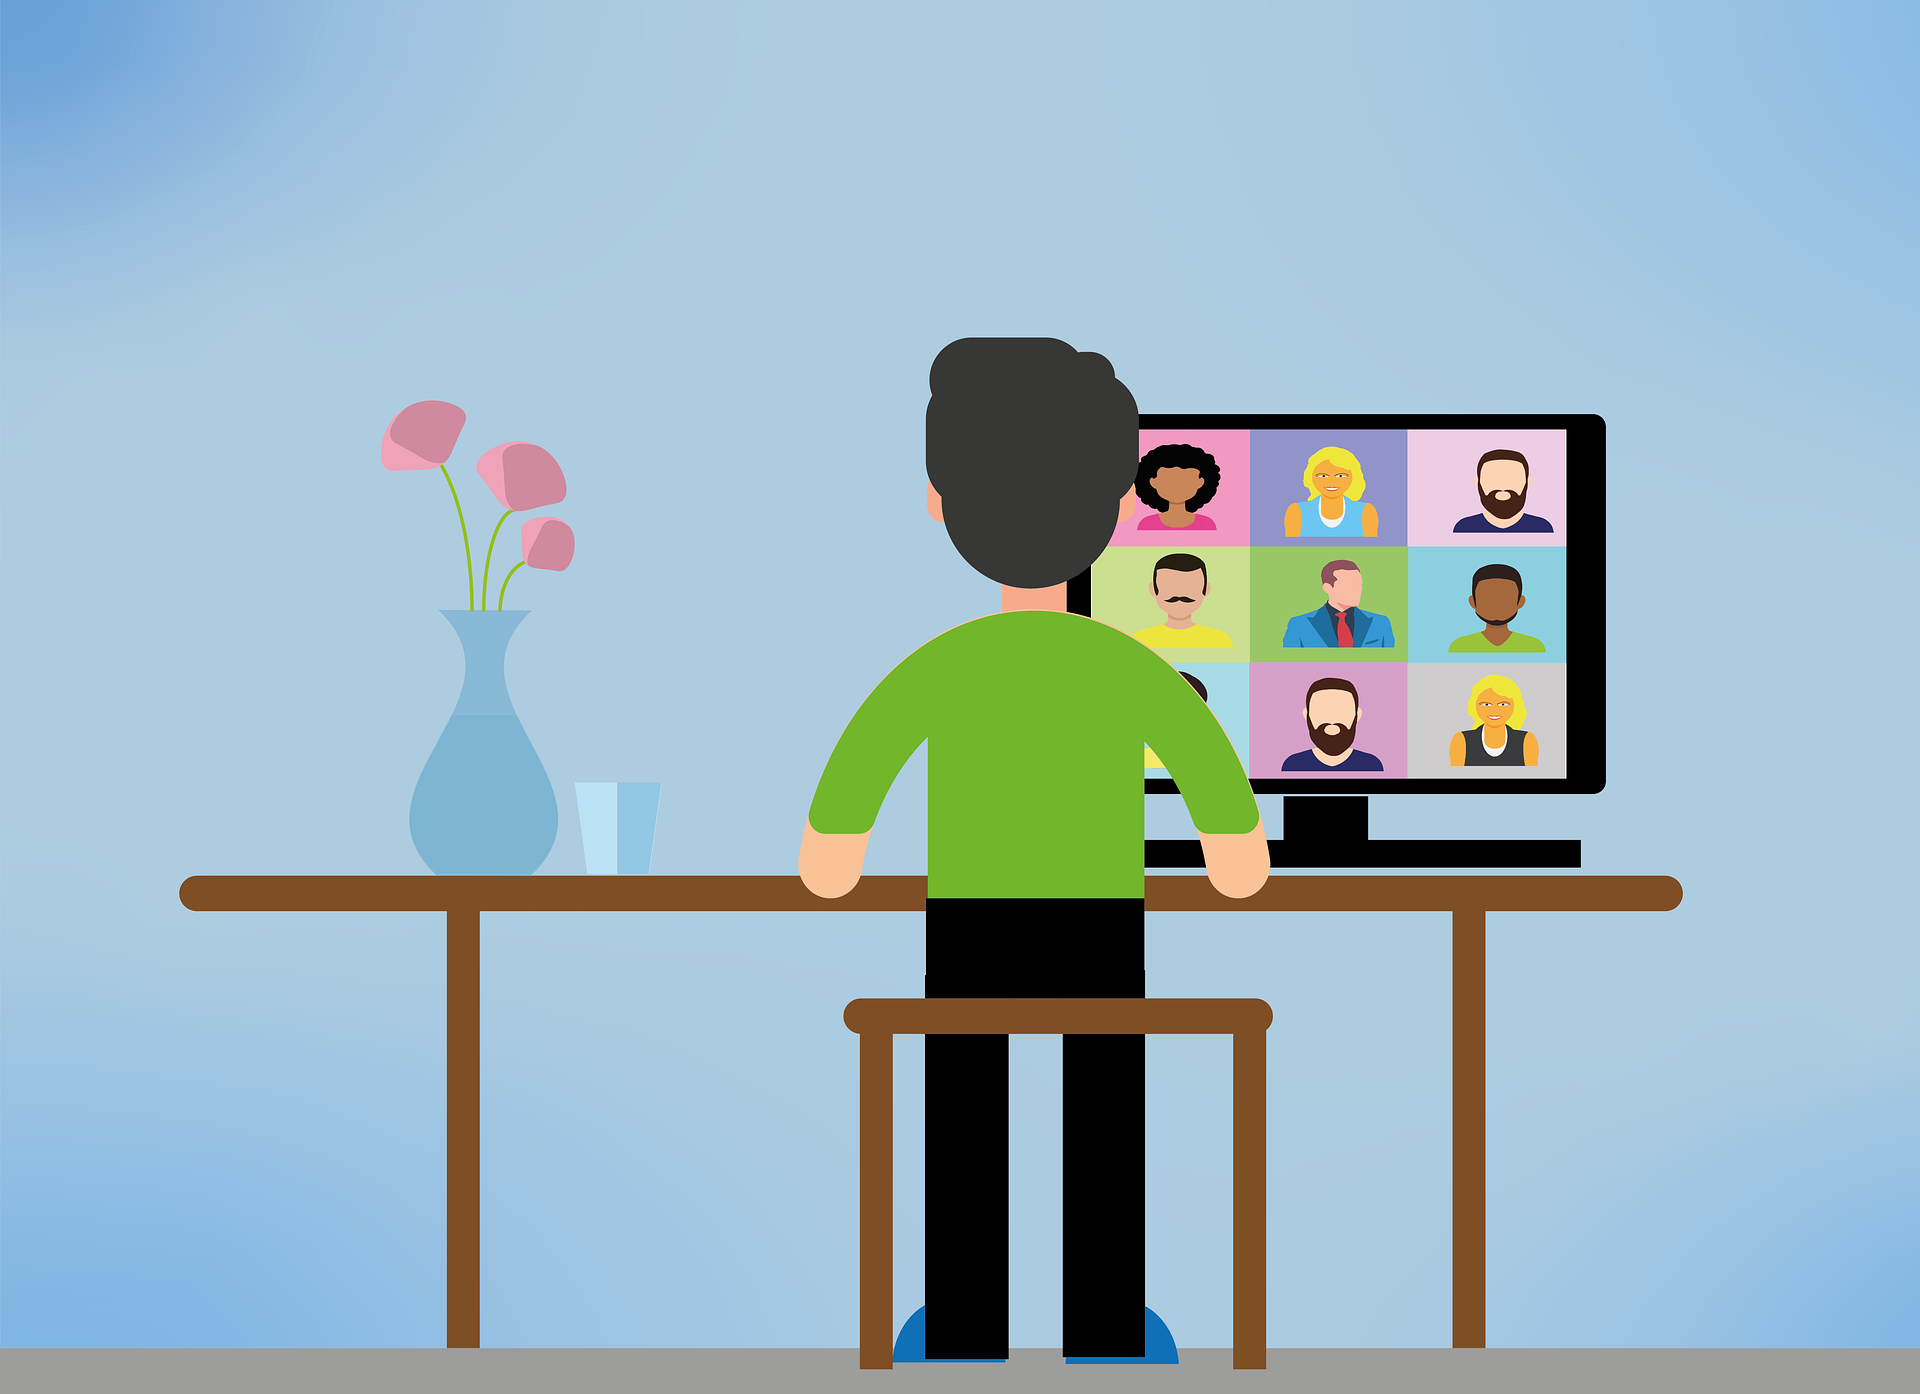 Illustration shows a man standing at a desk there is a video conference represented on his screen